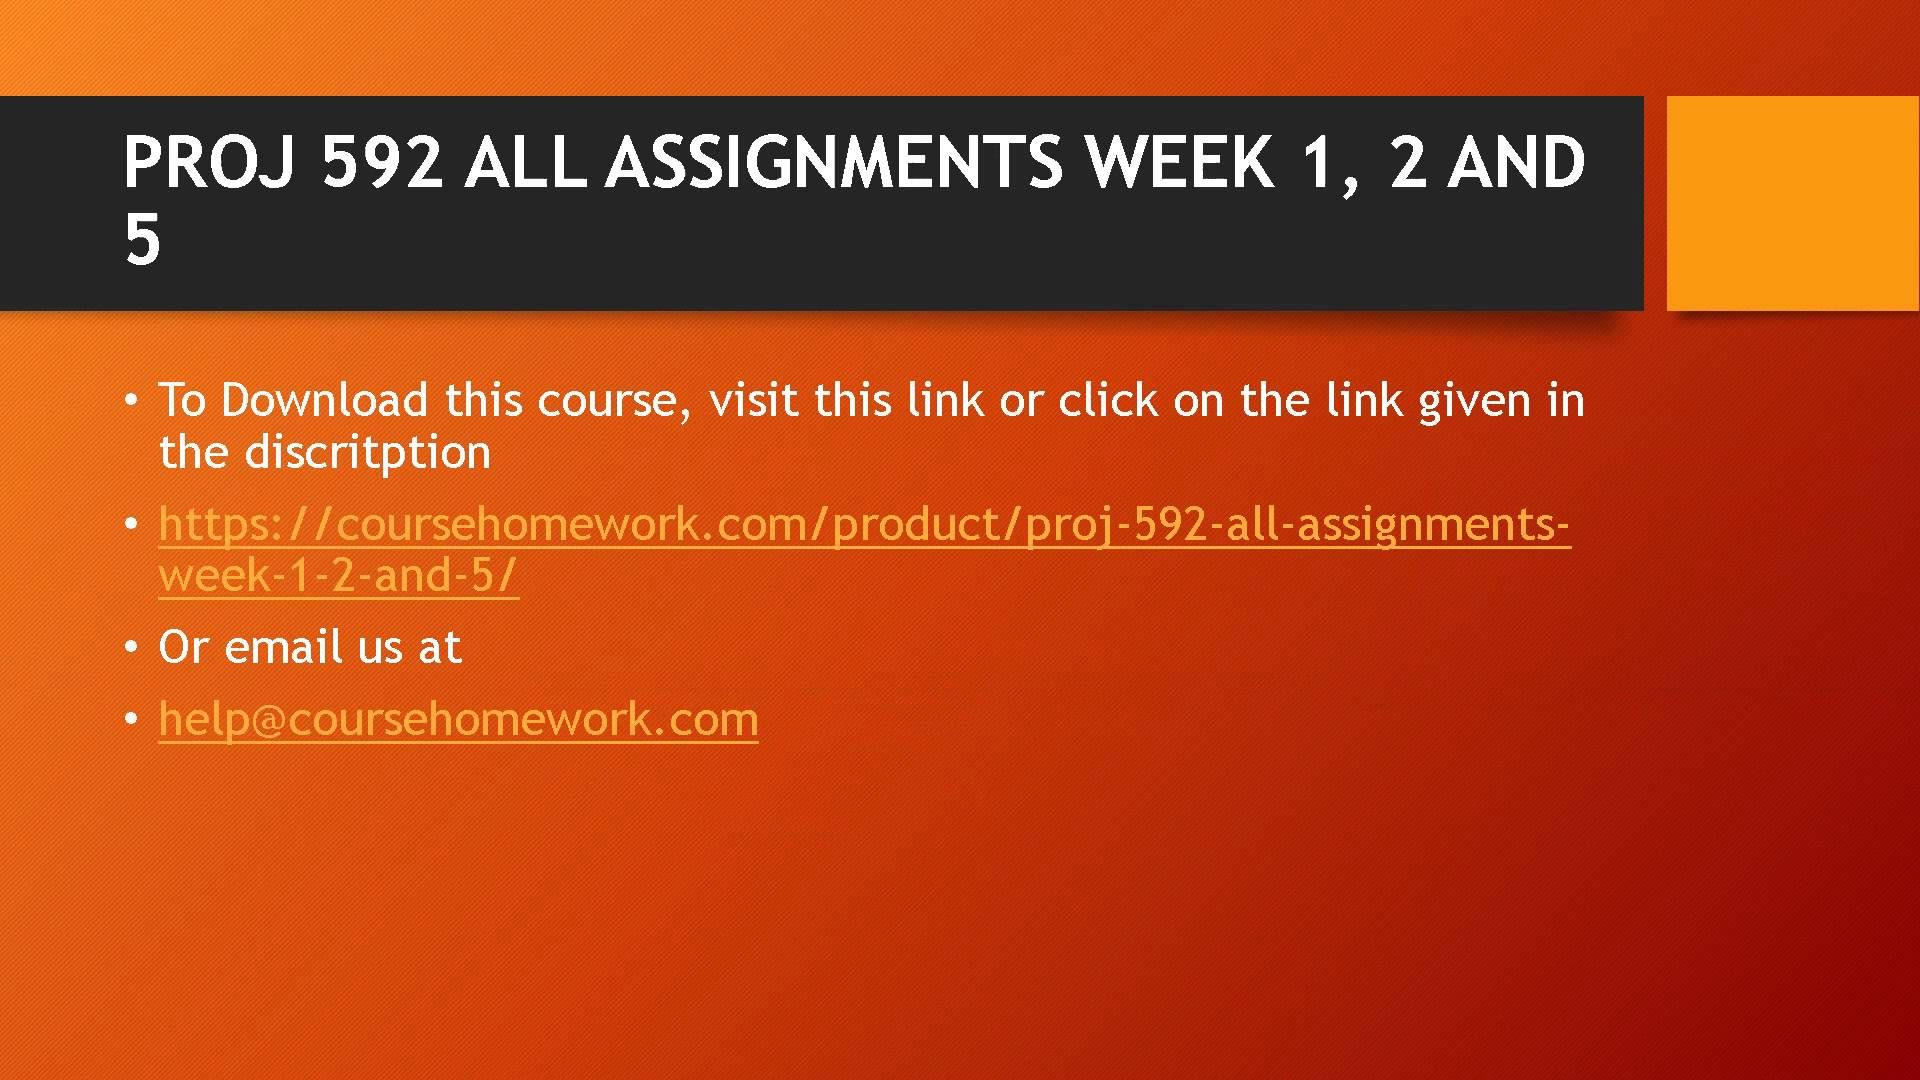 PROJ 592 ALL ASSIGNMENTS WEEK 1, 2 AND 5